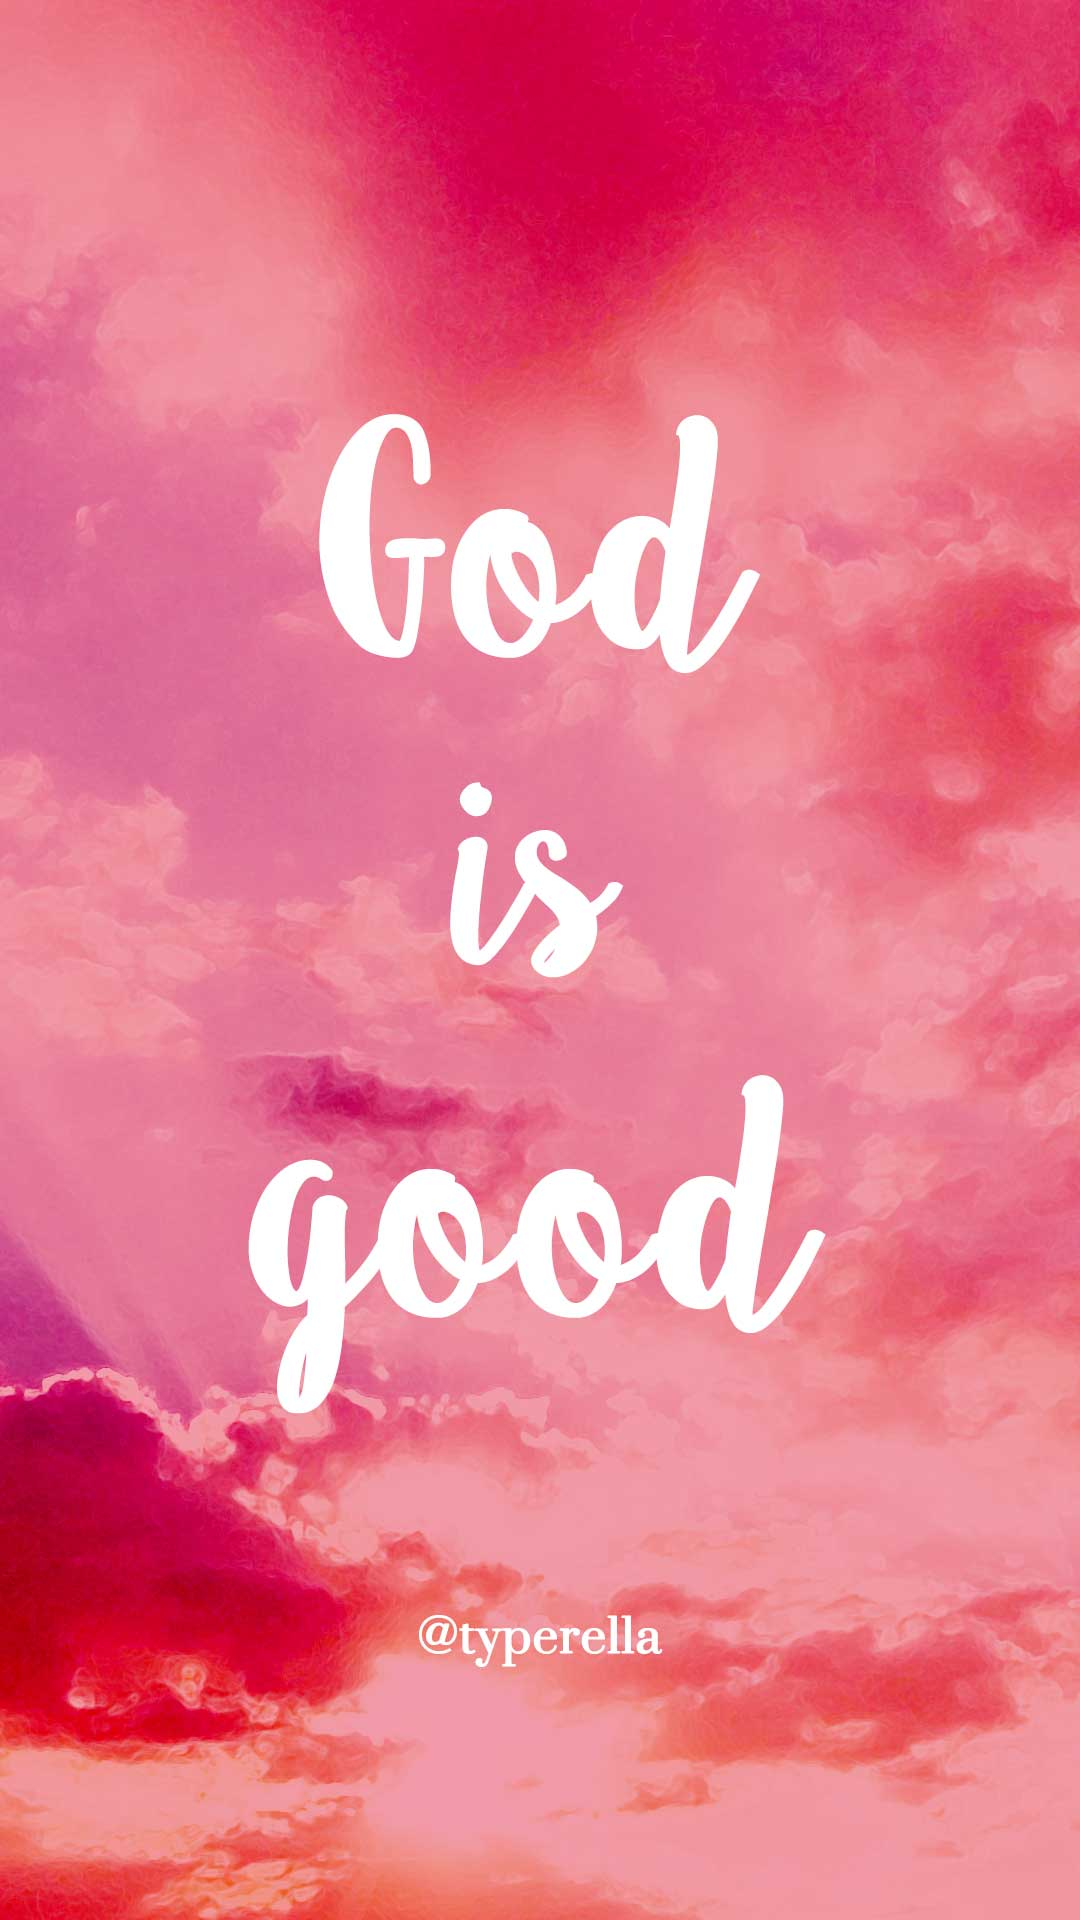 God Quotes Wallpapers - Top Free God Quotes Backgrounds ...